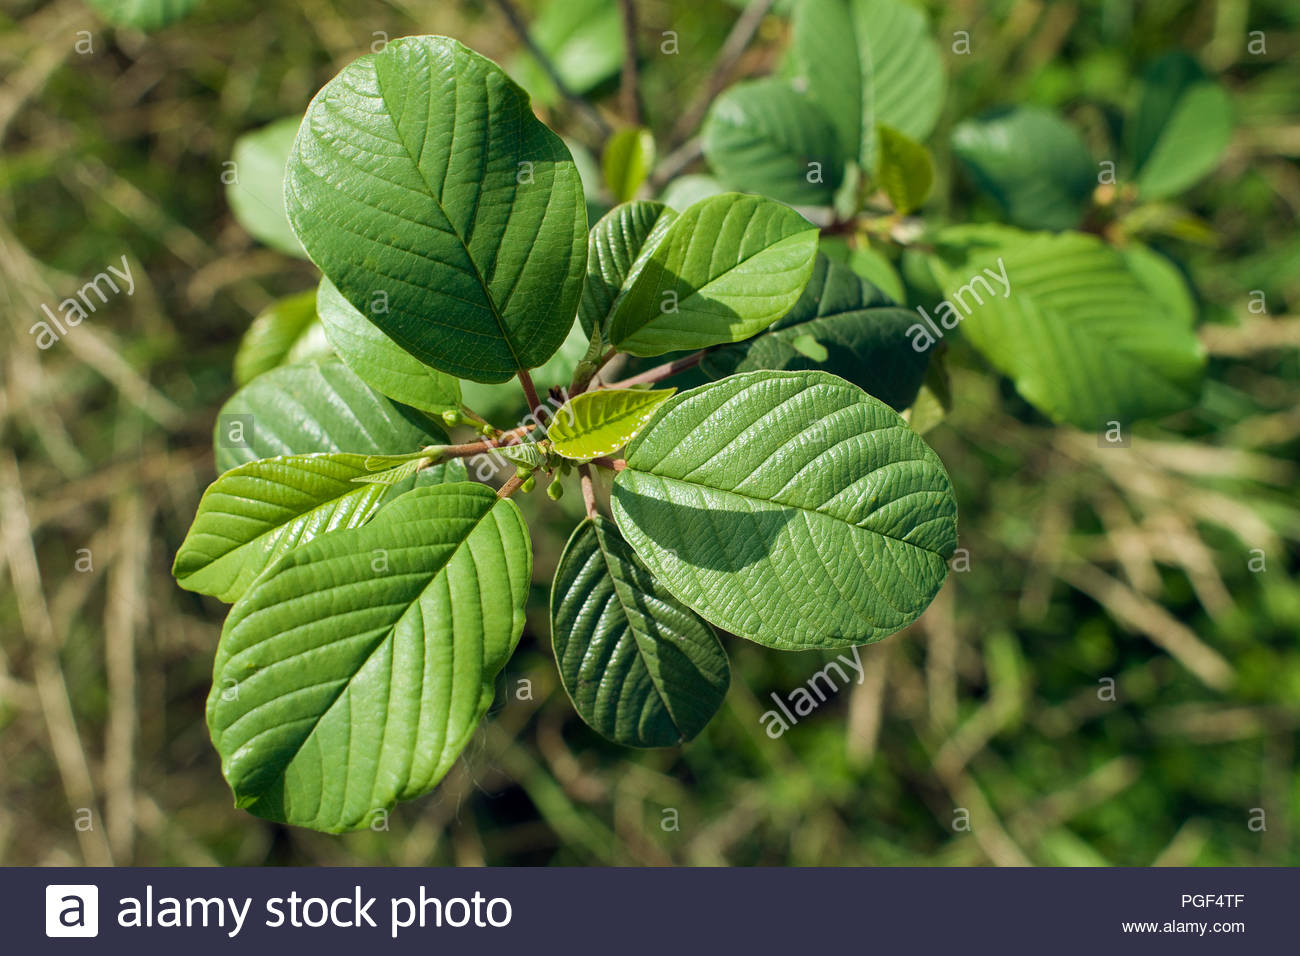 Oblong-shaped leaves on a plant in a forest - Stock Image